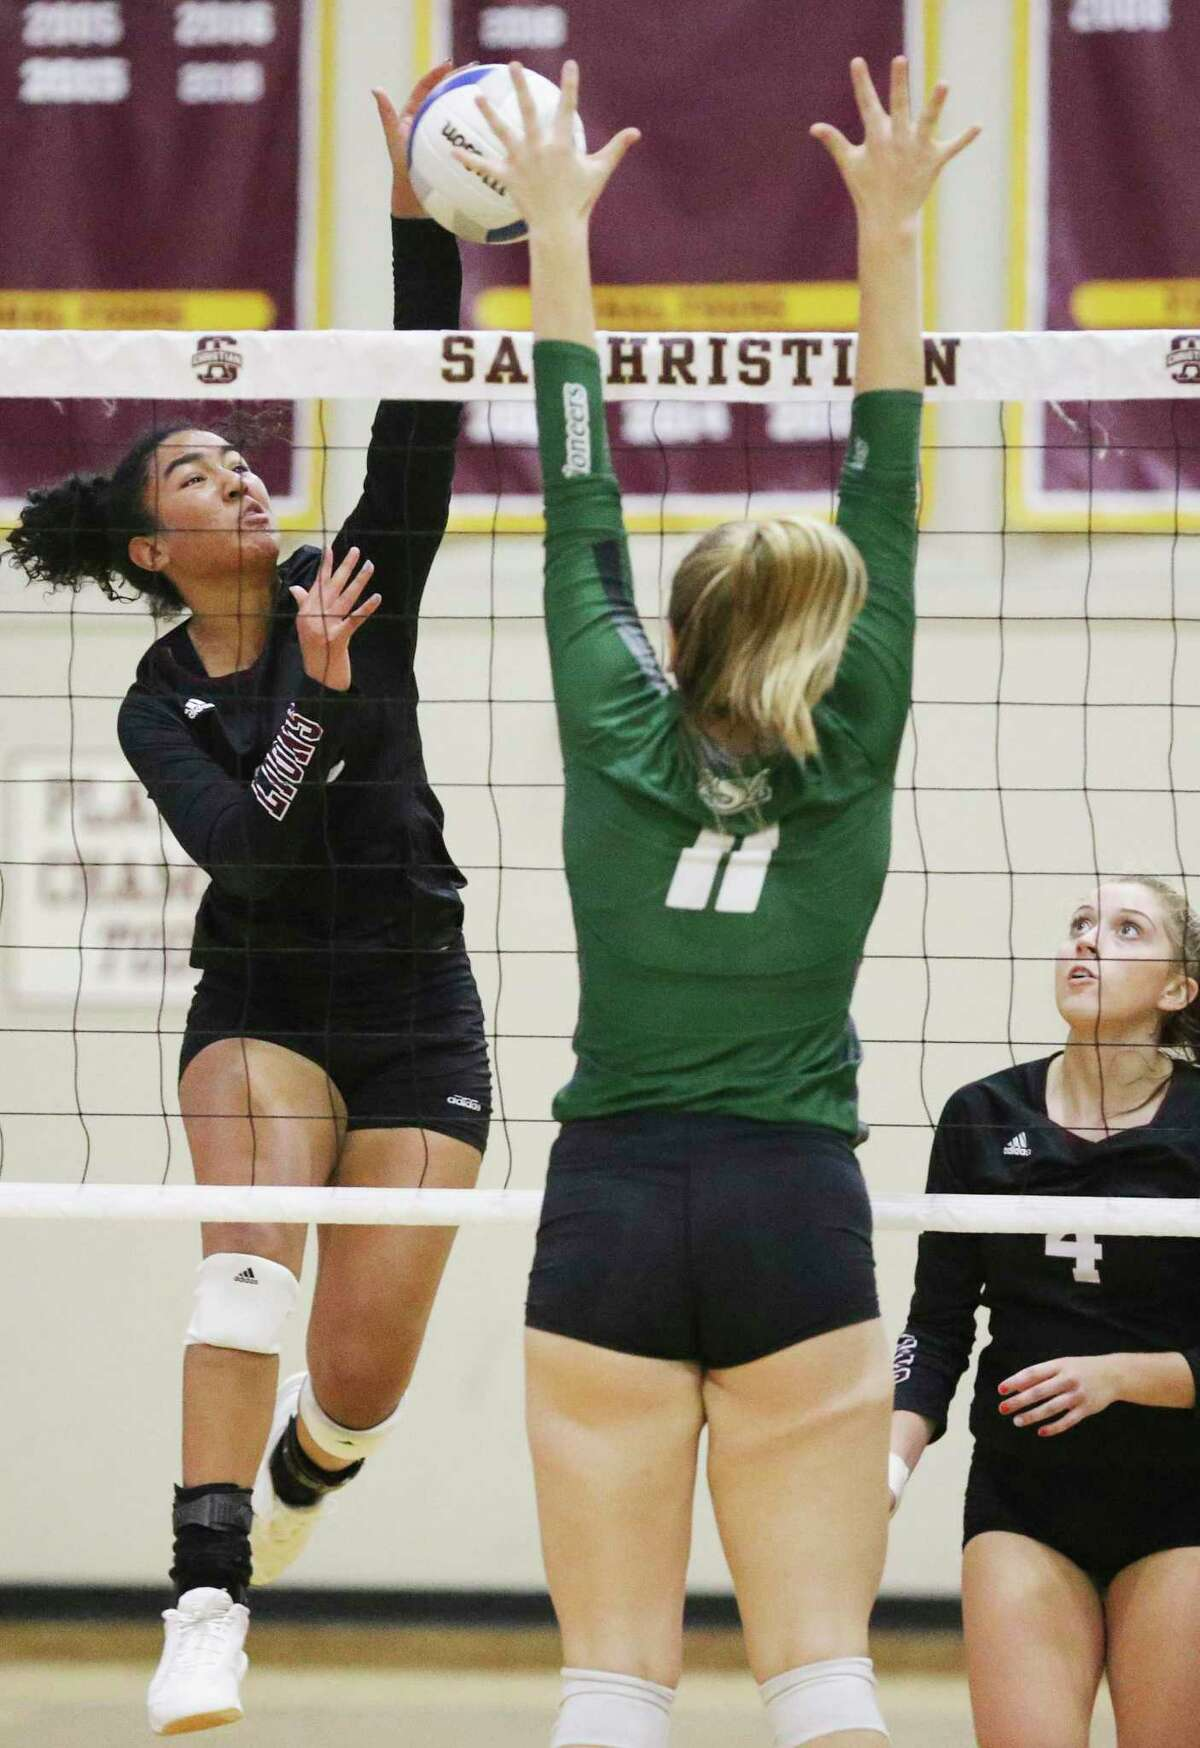 Adriana Ellard smashes a shot through the defense for the Lions as San Antonio Christian plays Houston Lutheran South in the second round TAPPS 5A volleyball playoffs at San Antonio Christian gym on 29, 2019.